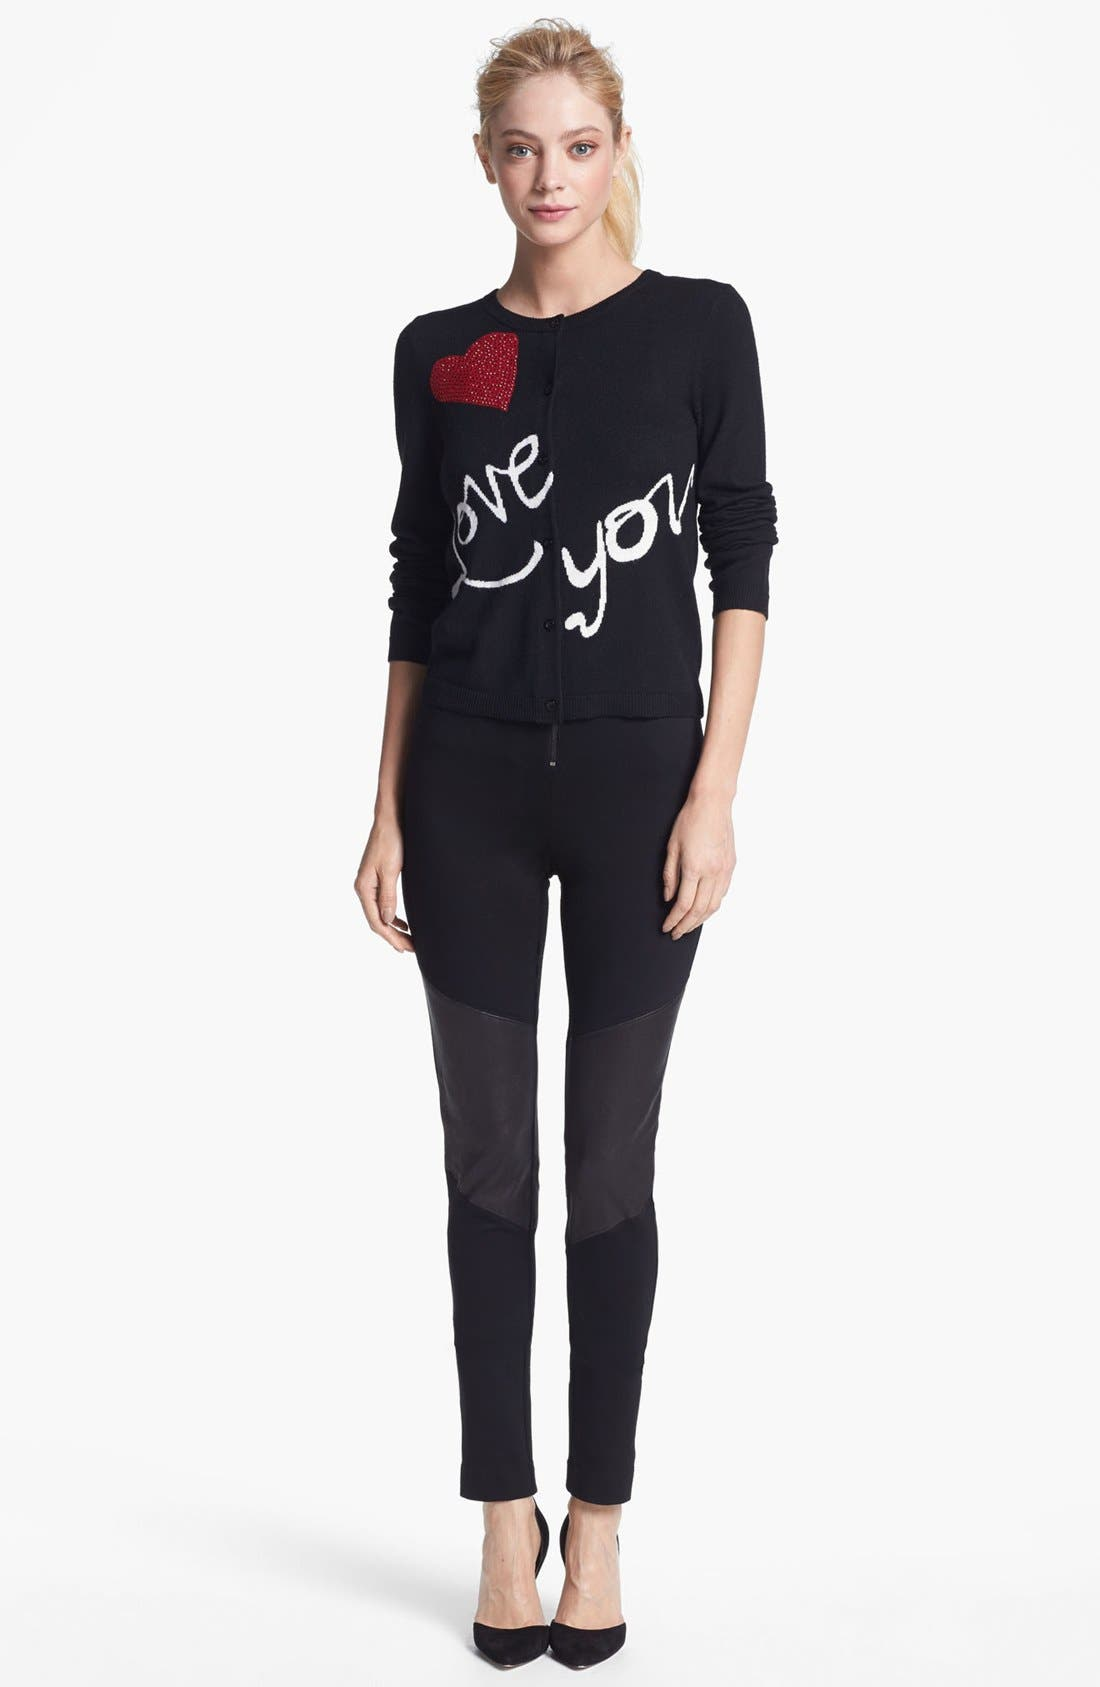 Alternate Image 1 Selected - Alice + Olivia 'Love You' Cardigan